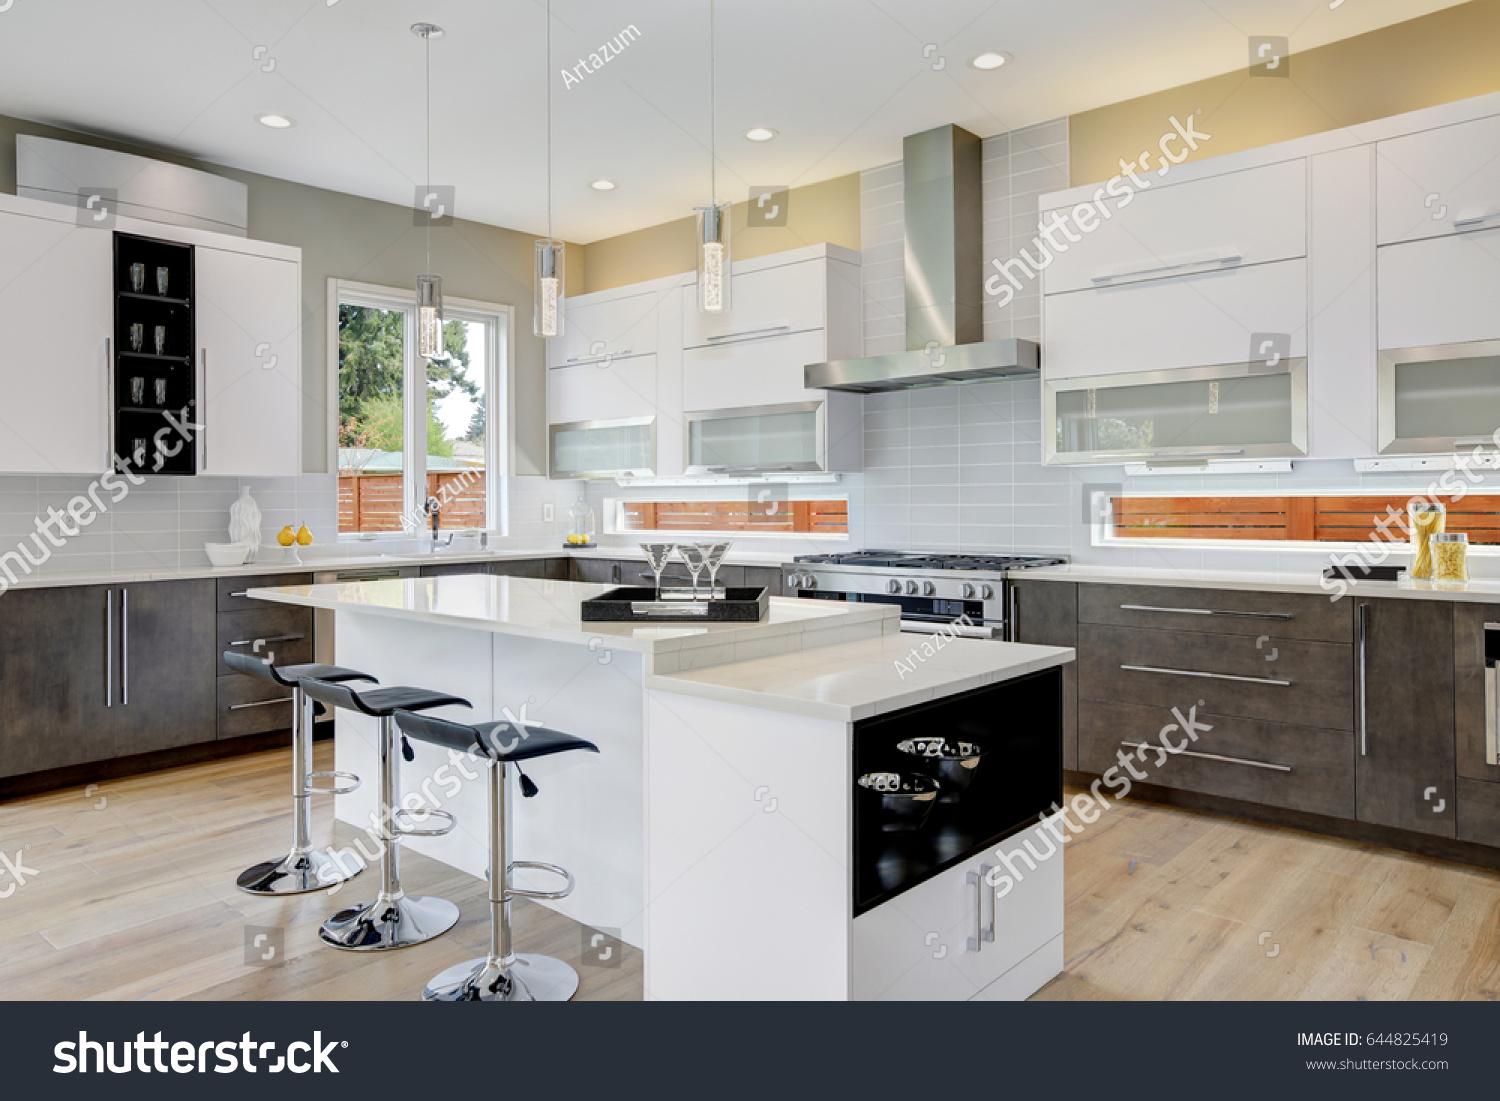 Luxury Kitchen With Natural Backsplash, White Quartz, Natural Brown Wood  Cabinets And Lots Of